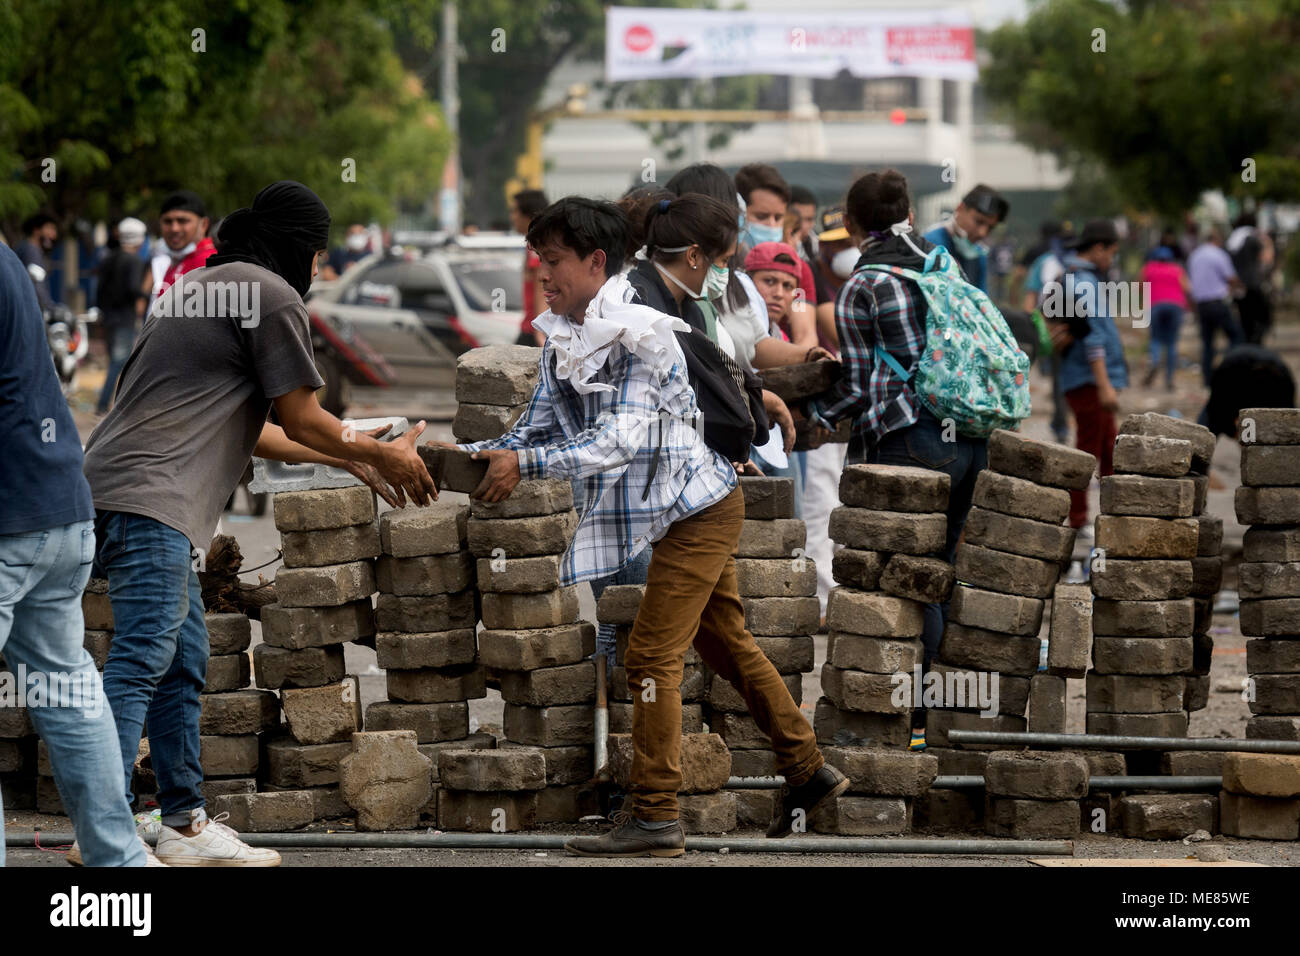 20 April 2018, Nicaragua, Managua: Protestors barricade a street. Nicaragua's people are protesting an increase in taxation as a consequence of new social reforms and voice their dismay with the neoliberal policies of President Ortega. Photo: Carlos Herrera/dpa Credit: dpa picture alliance/Alamy Live News - Stock Image